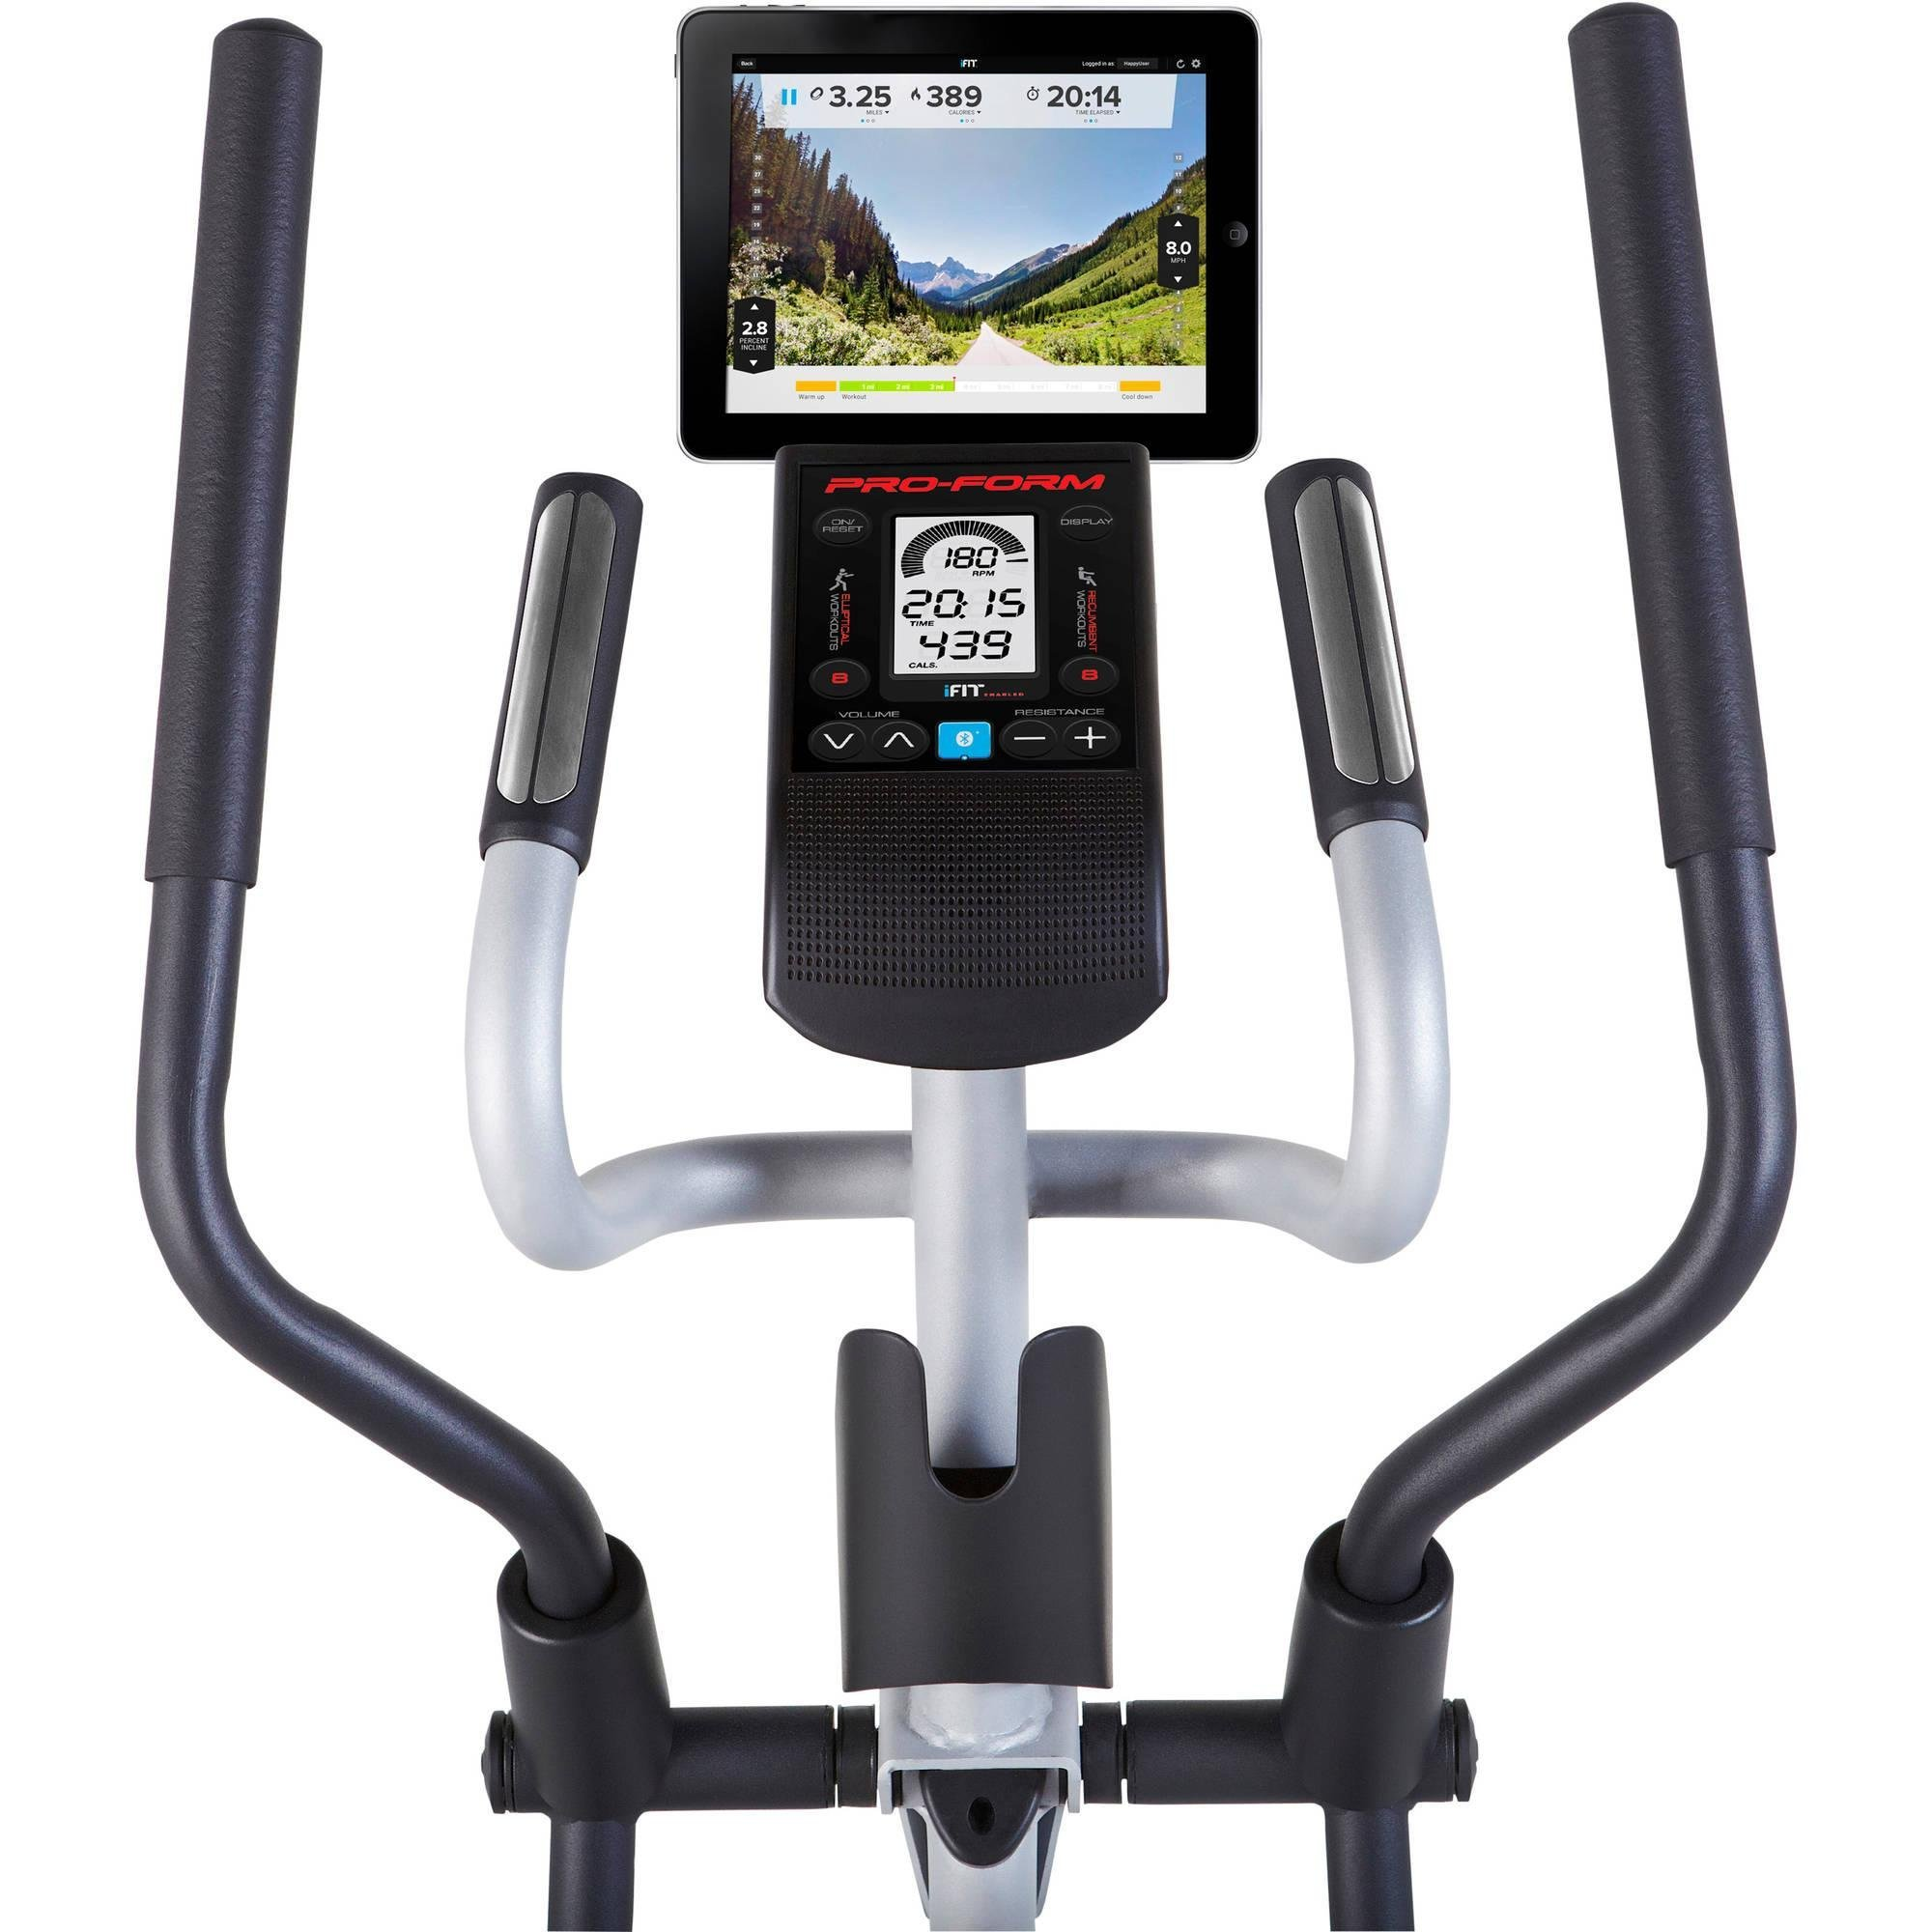 2-in-1 Double Elliptical and Recumbent Bike, Black by ProForm (Image #6)